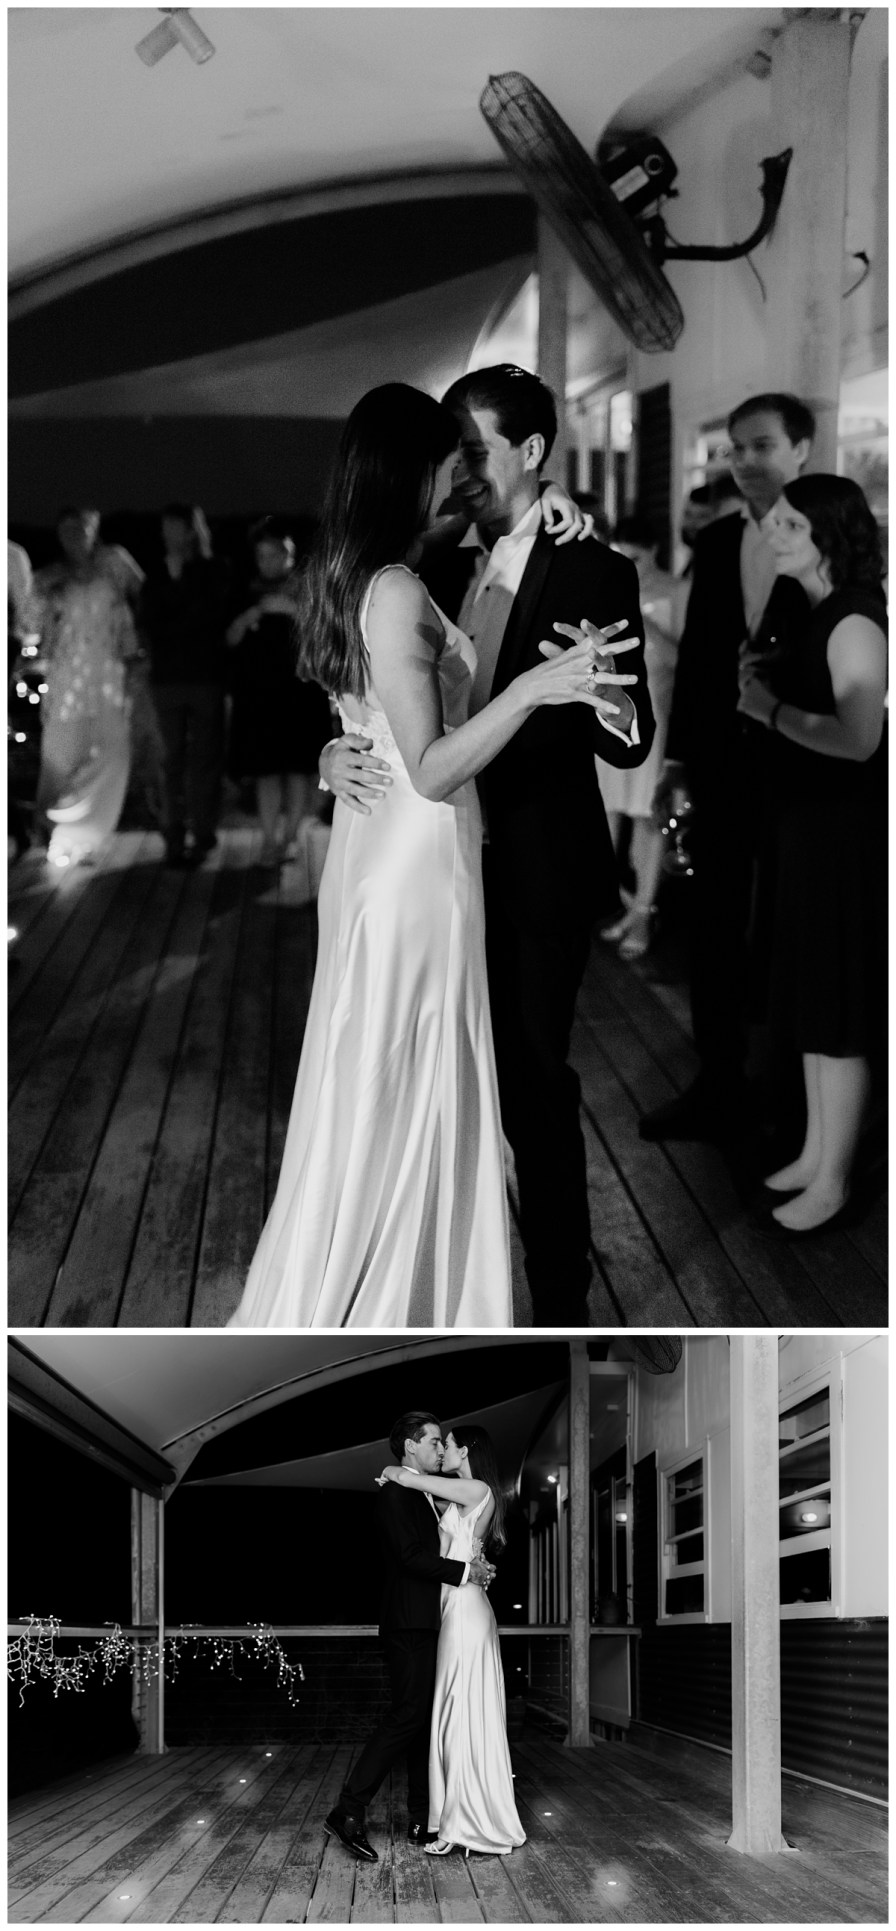 adelaidewedding goldlightphotography.jpg191 - Shannon + Michael, Star of Greece